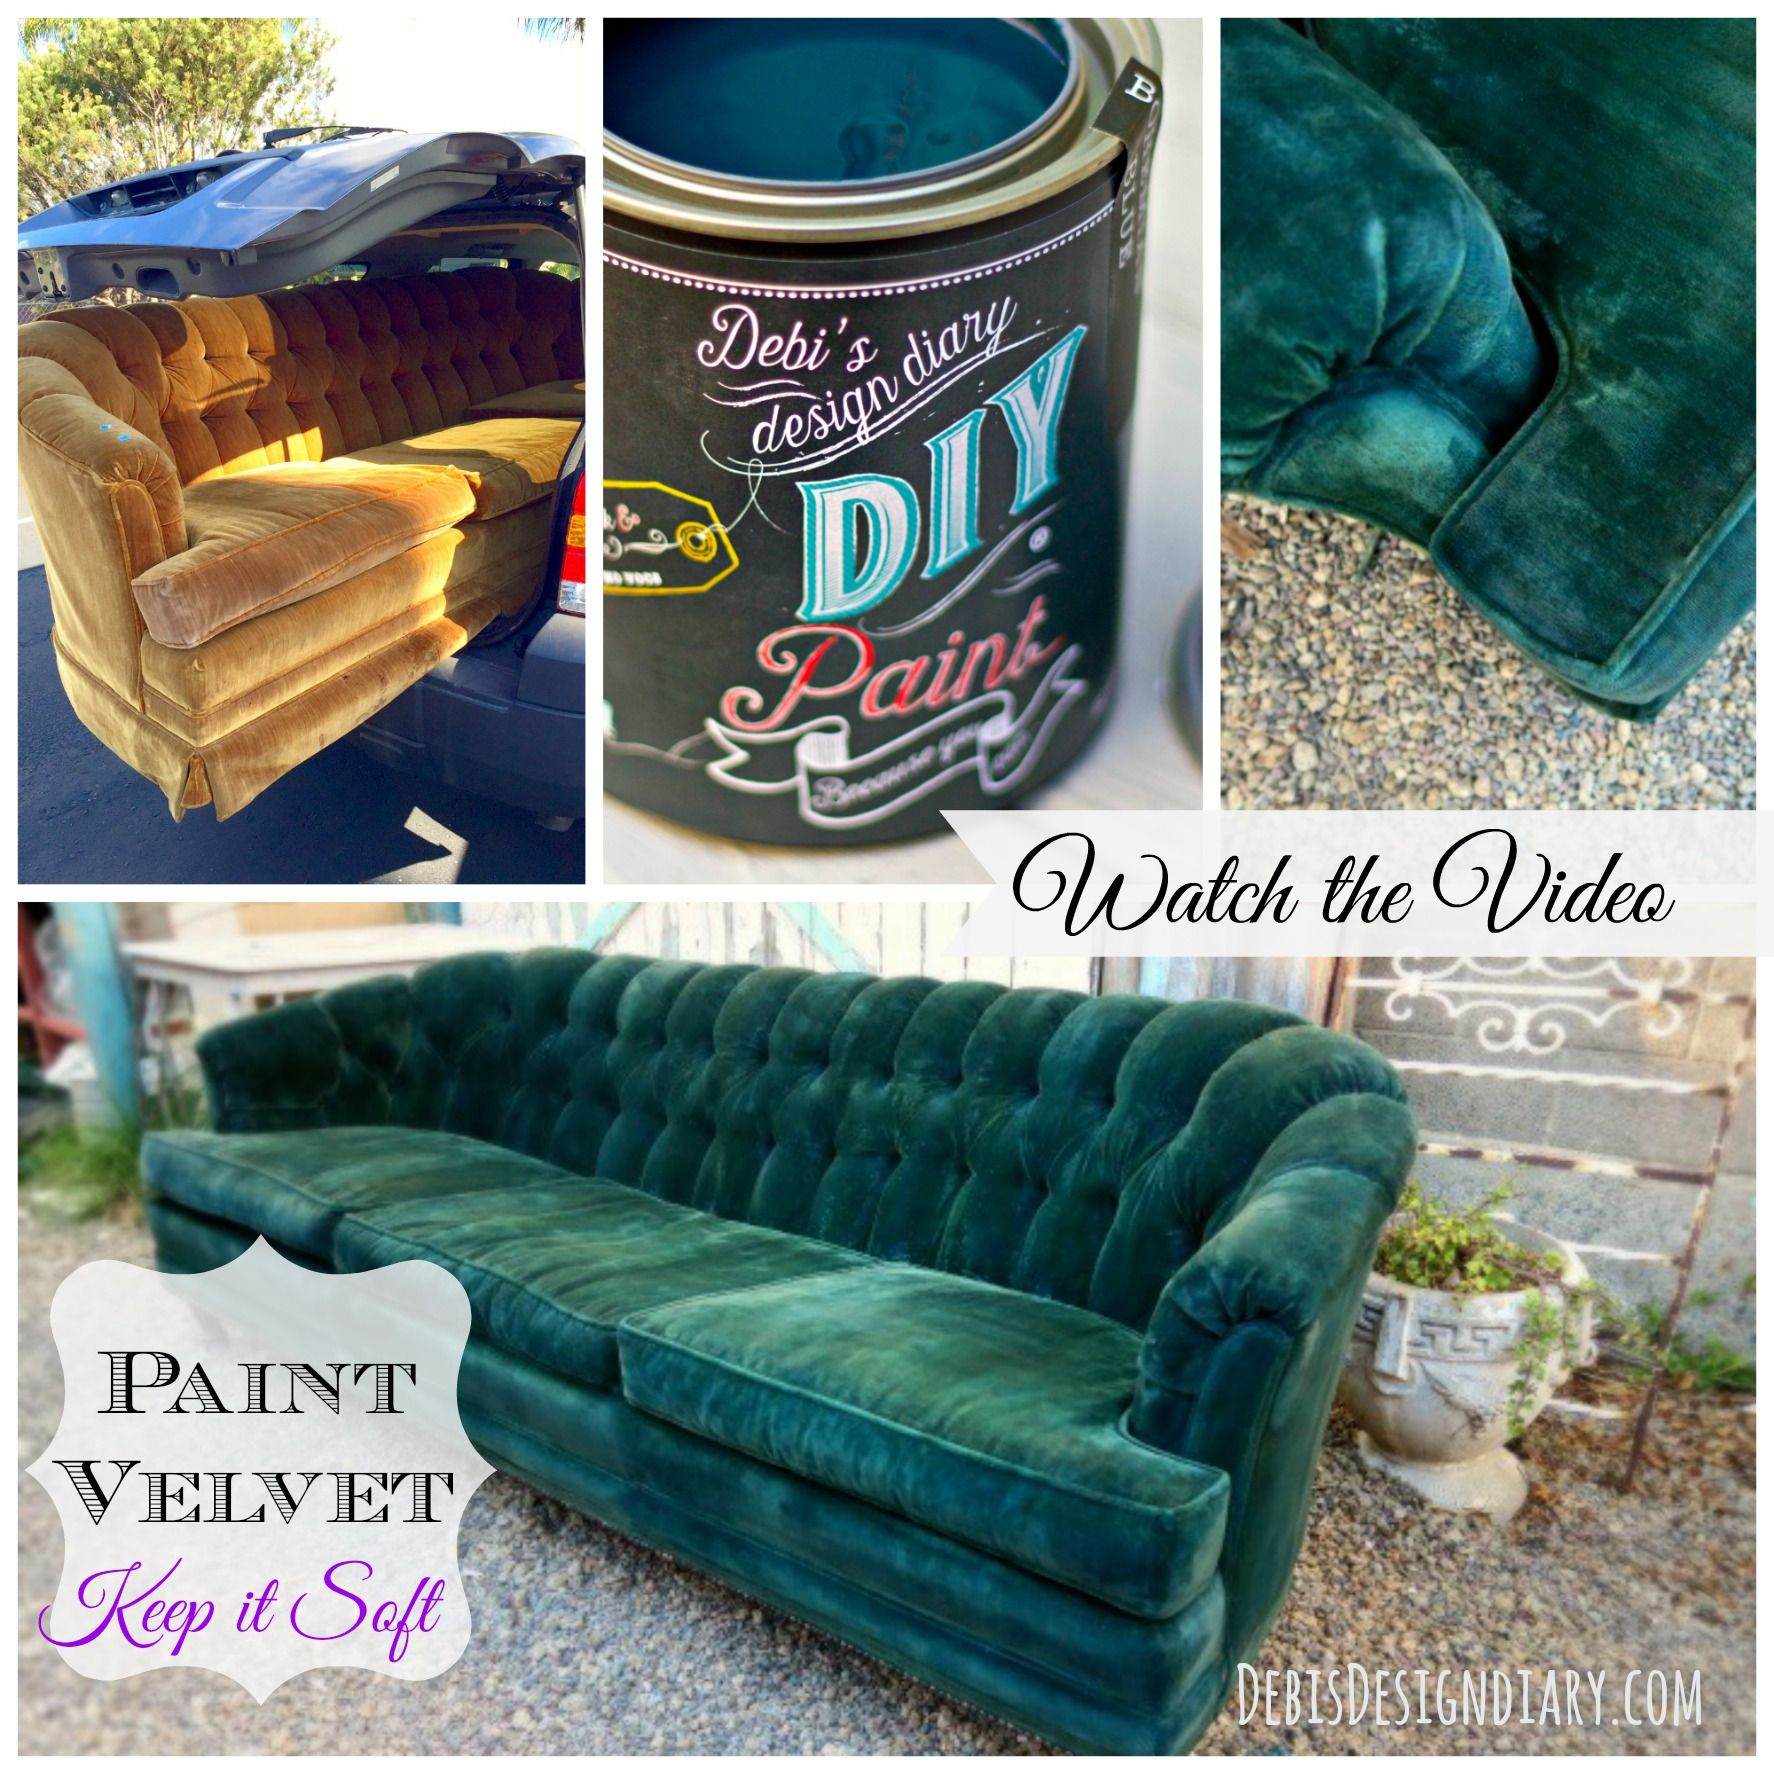 How To Paint Upholstery Keep The Soft Texture Of The Fabric Even